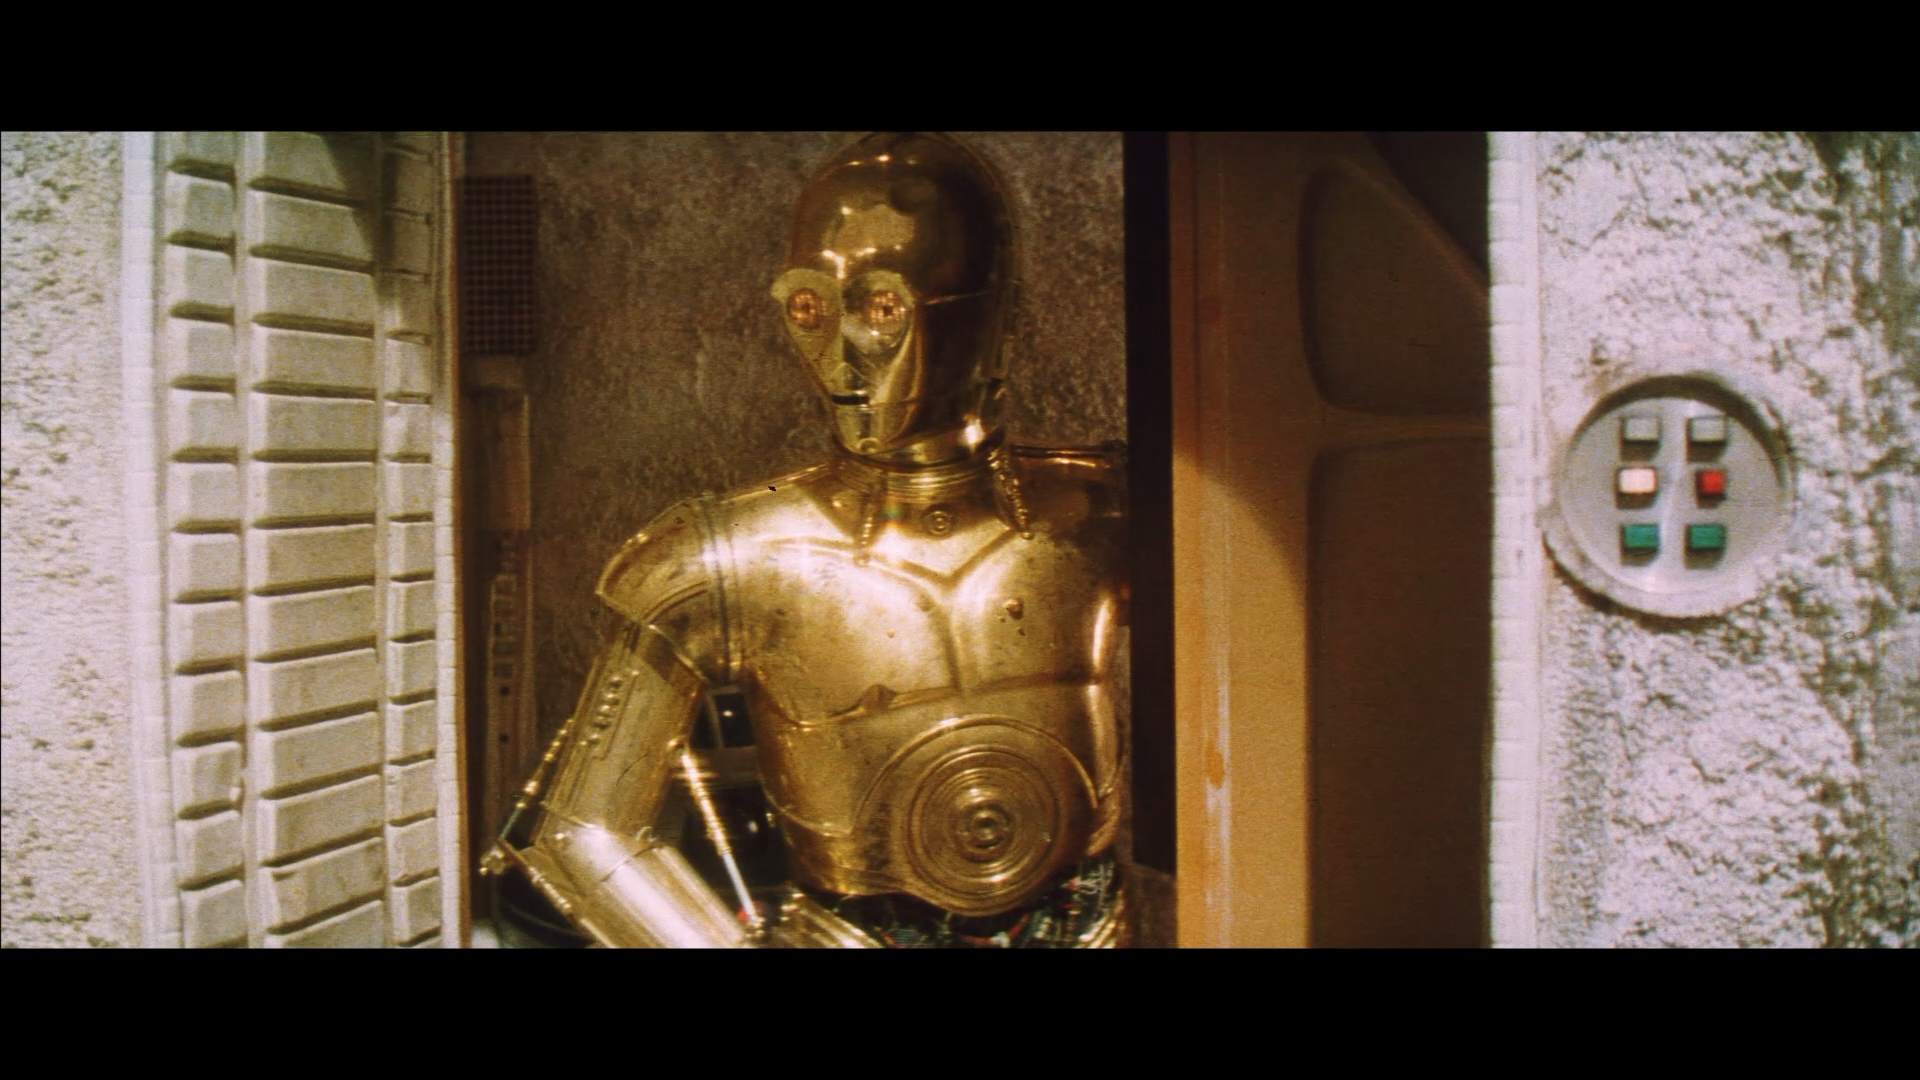 Star wars despecialized download reddit | You can watch an